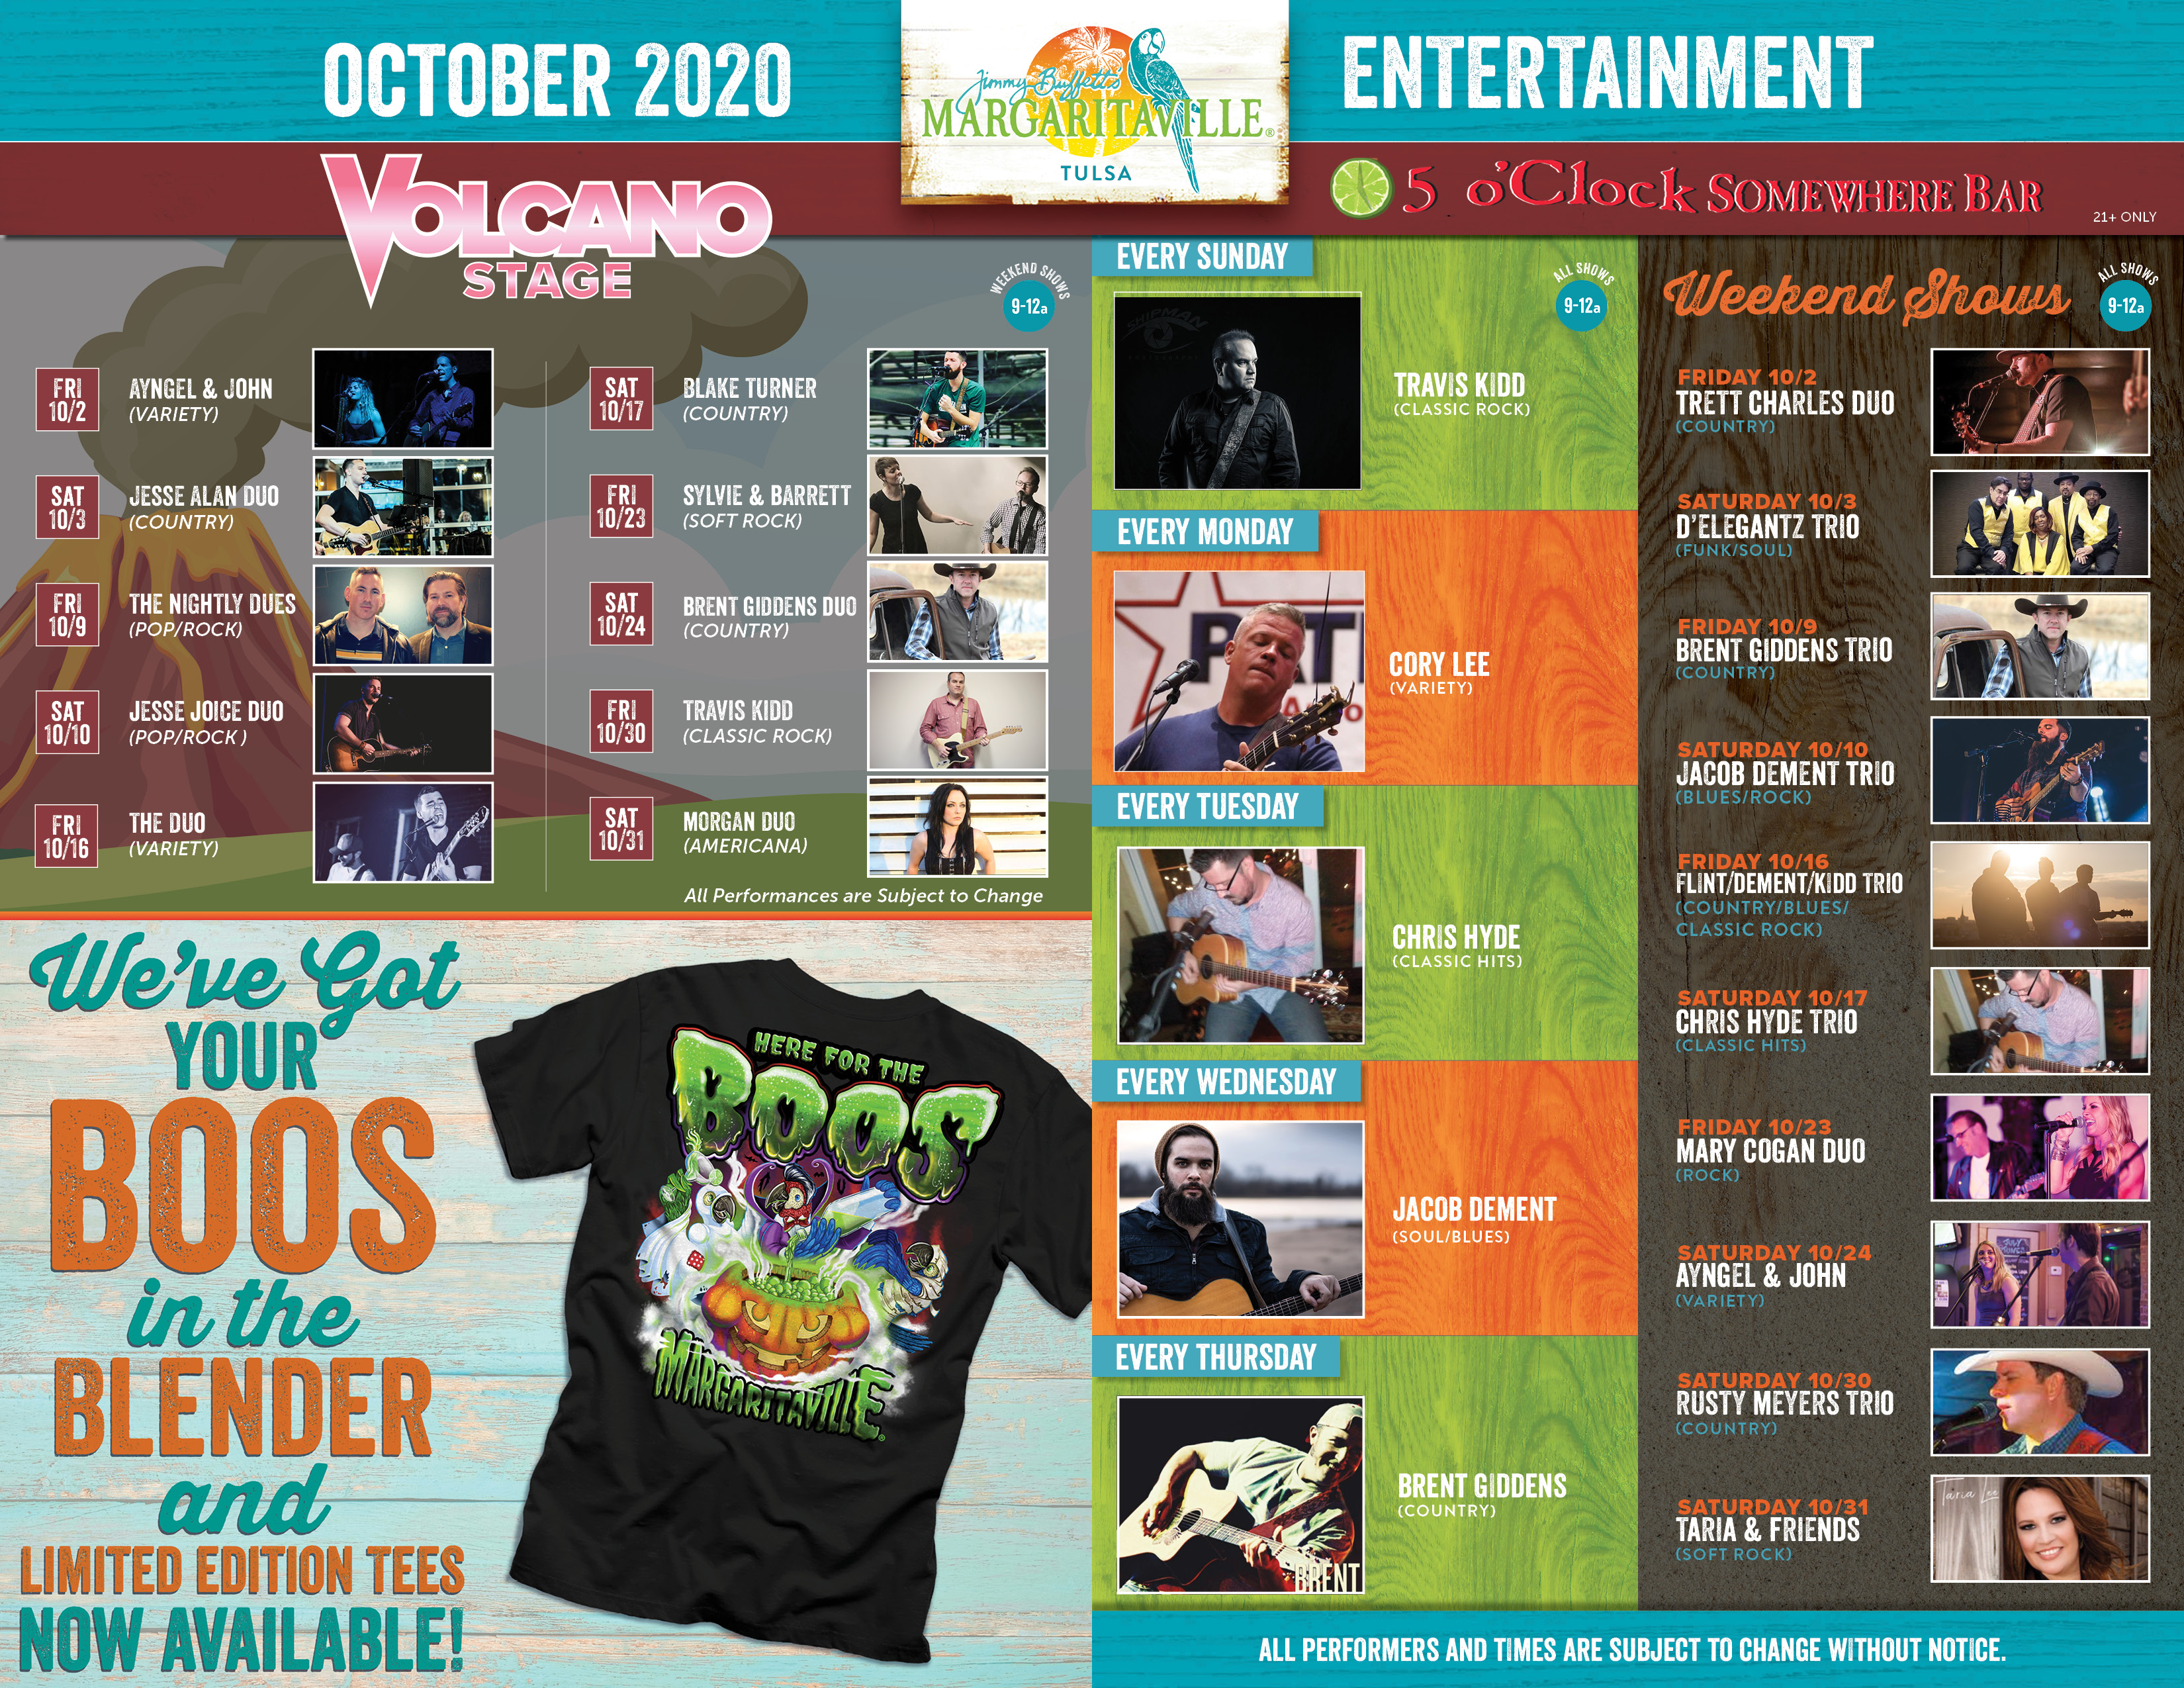 Margaritaville Tulsa October 2020 Calendar of Events. Visually impaired customers please call for assistance or read next tab